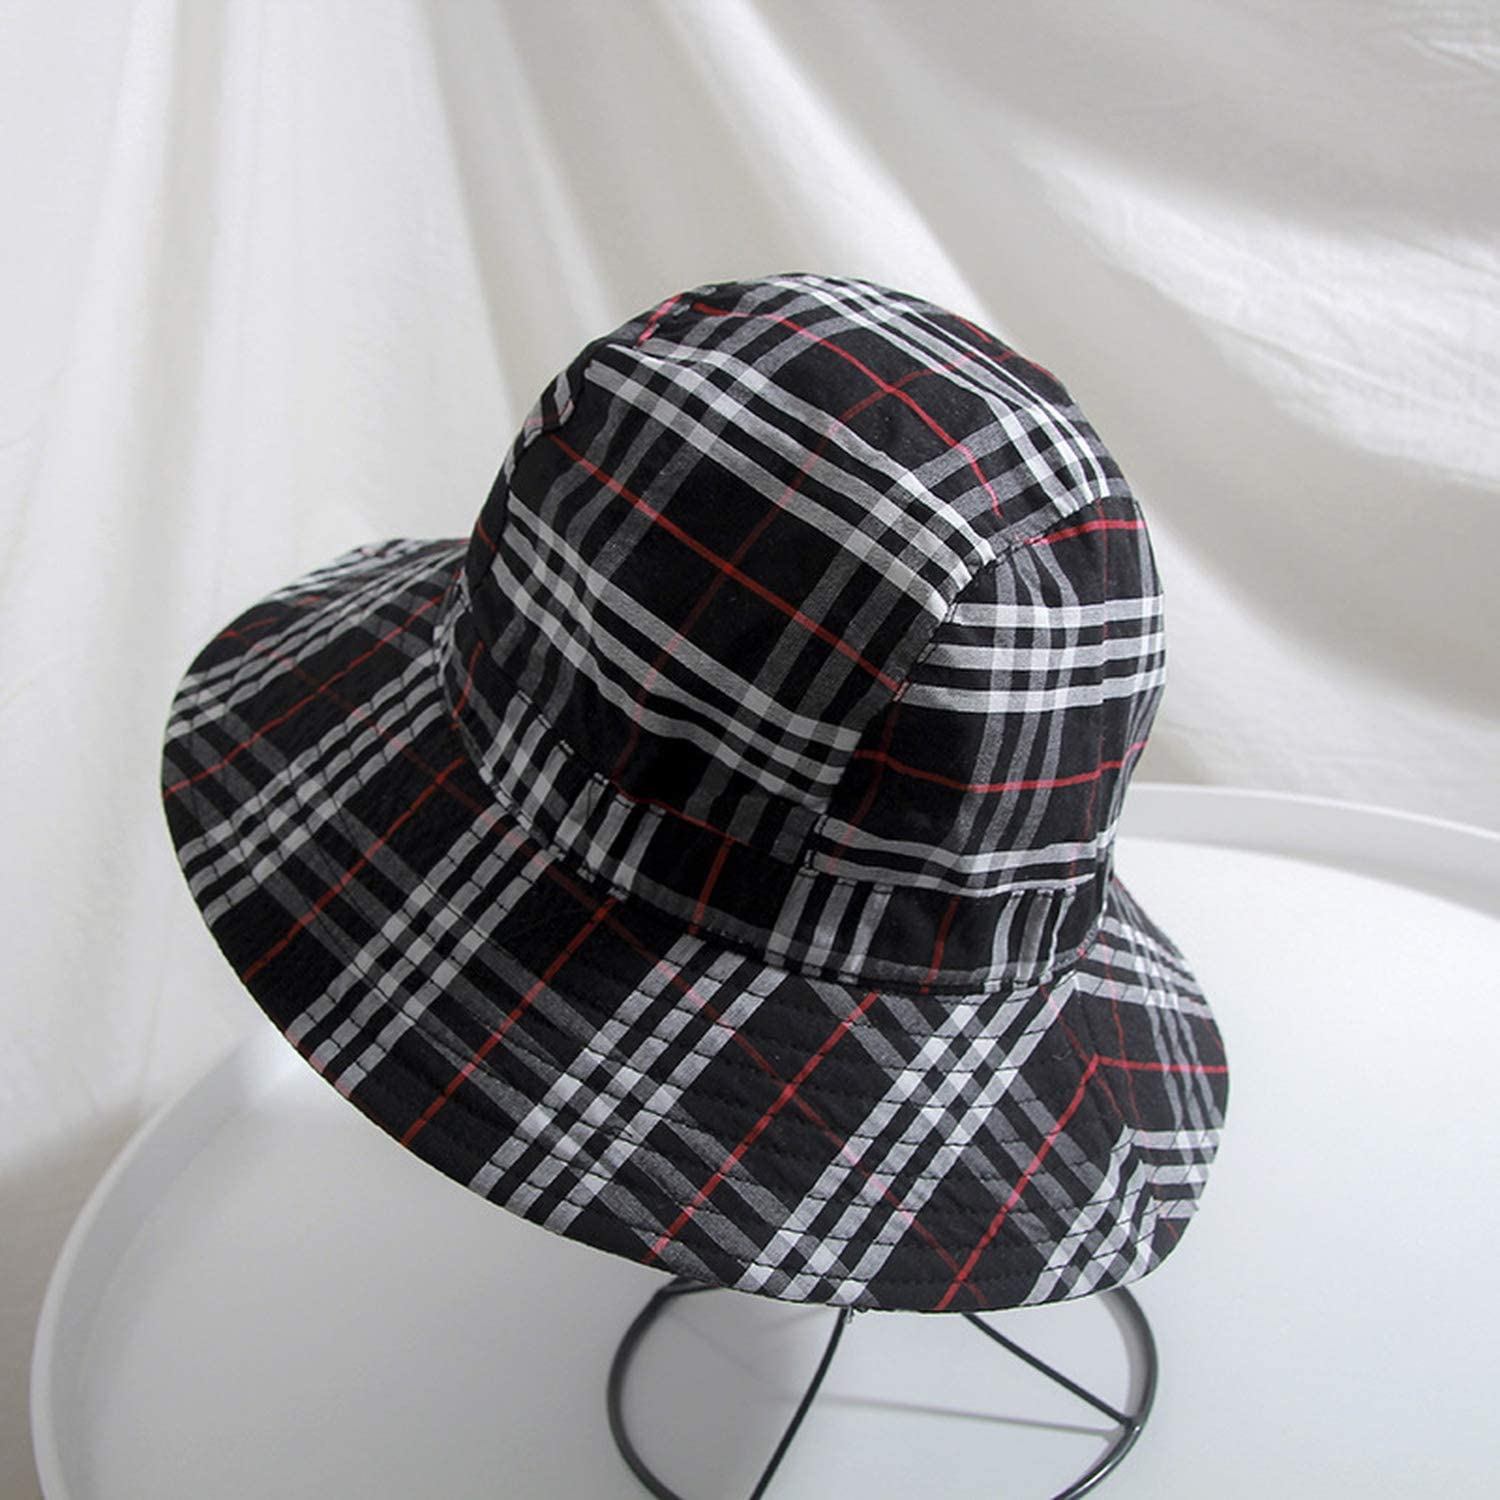 bb-5 2019 Cotton 4 Style Solid Plaid Bucket Hat Fisherman Hat Outdoor Travel hat,Black